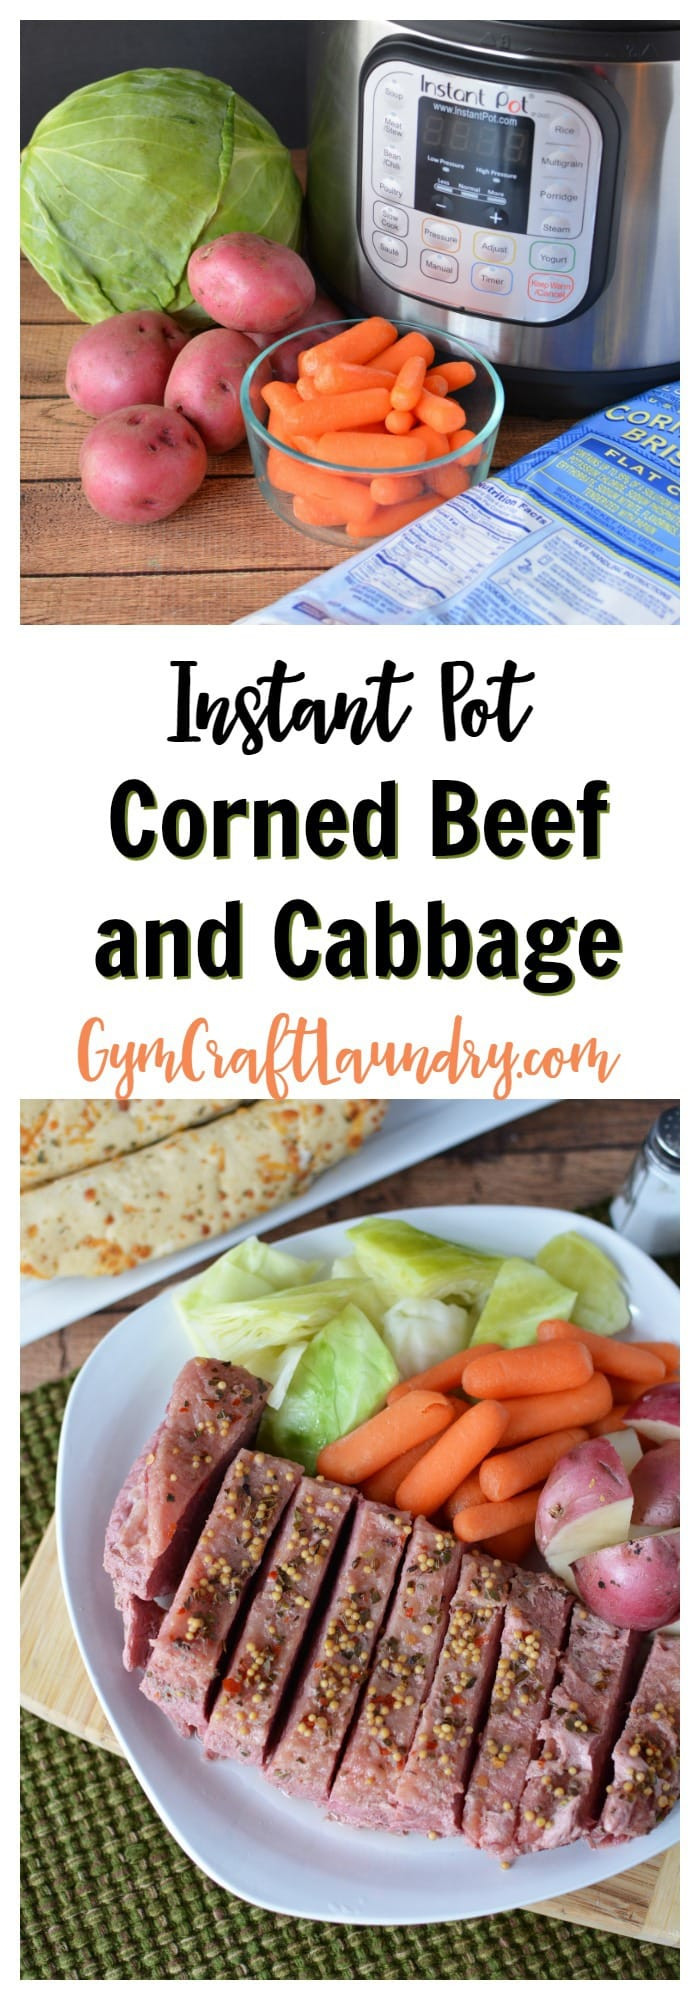 Instant Pot Corned Beef And Cabbage  Super Easy Saint Patrick s Day Recipe How to Make Corned